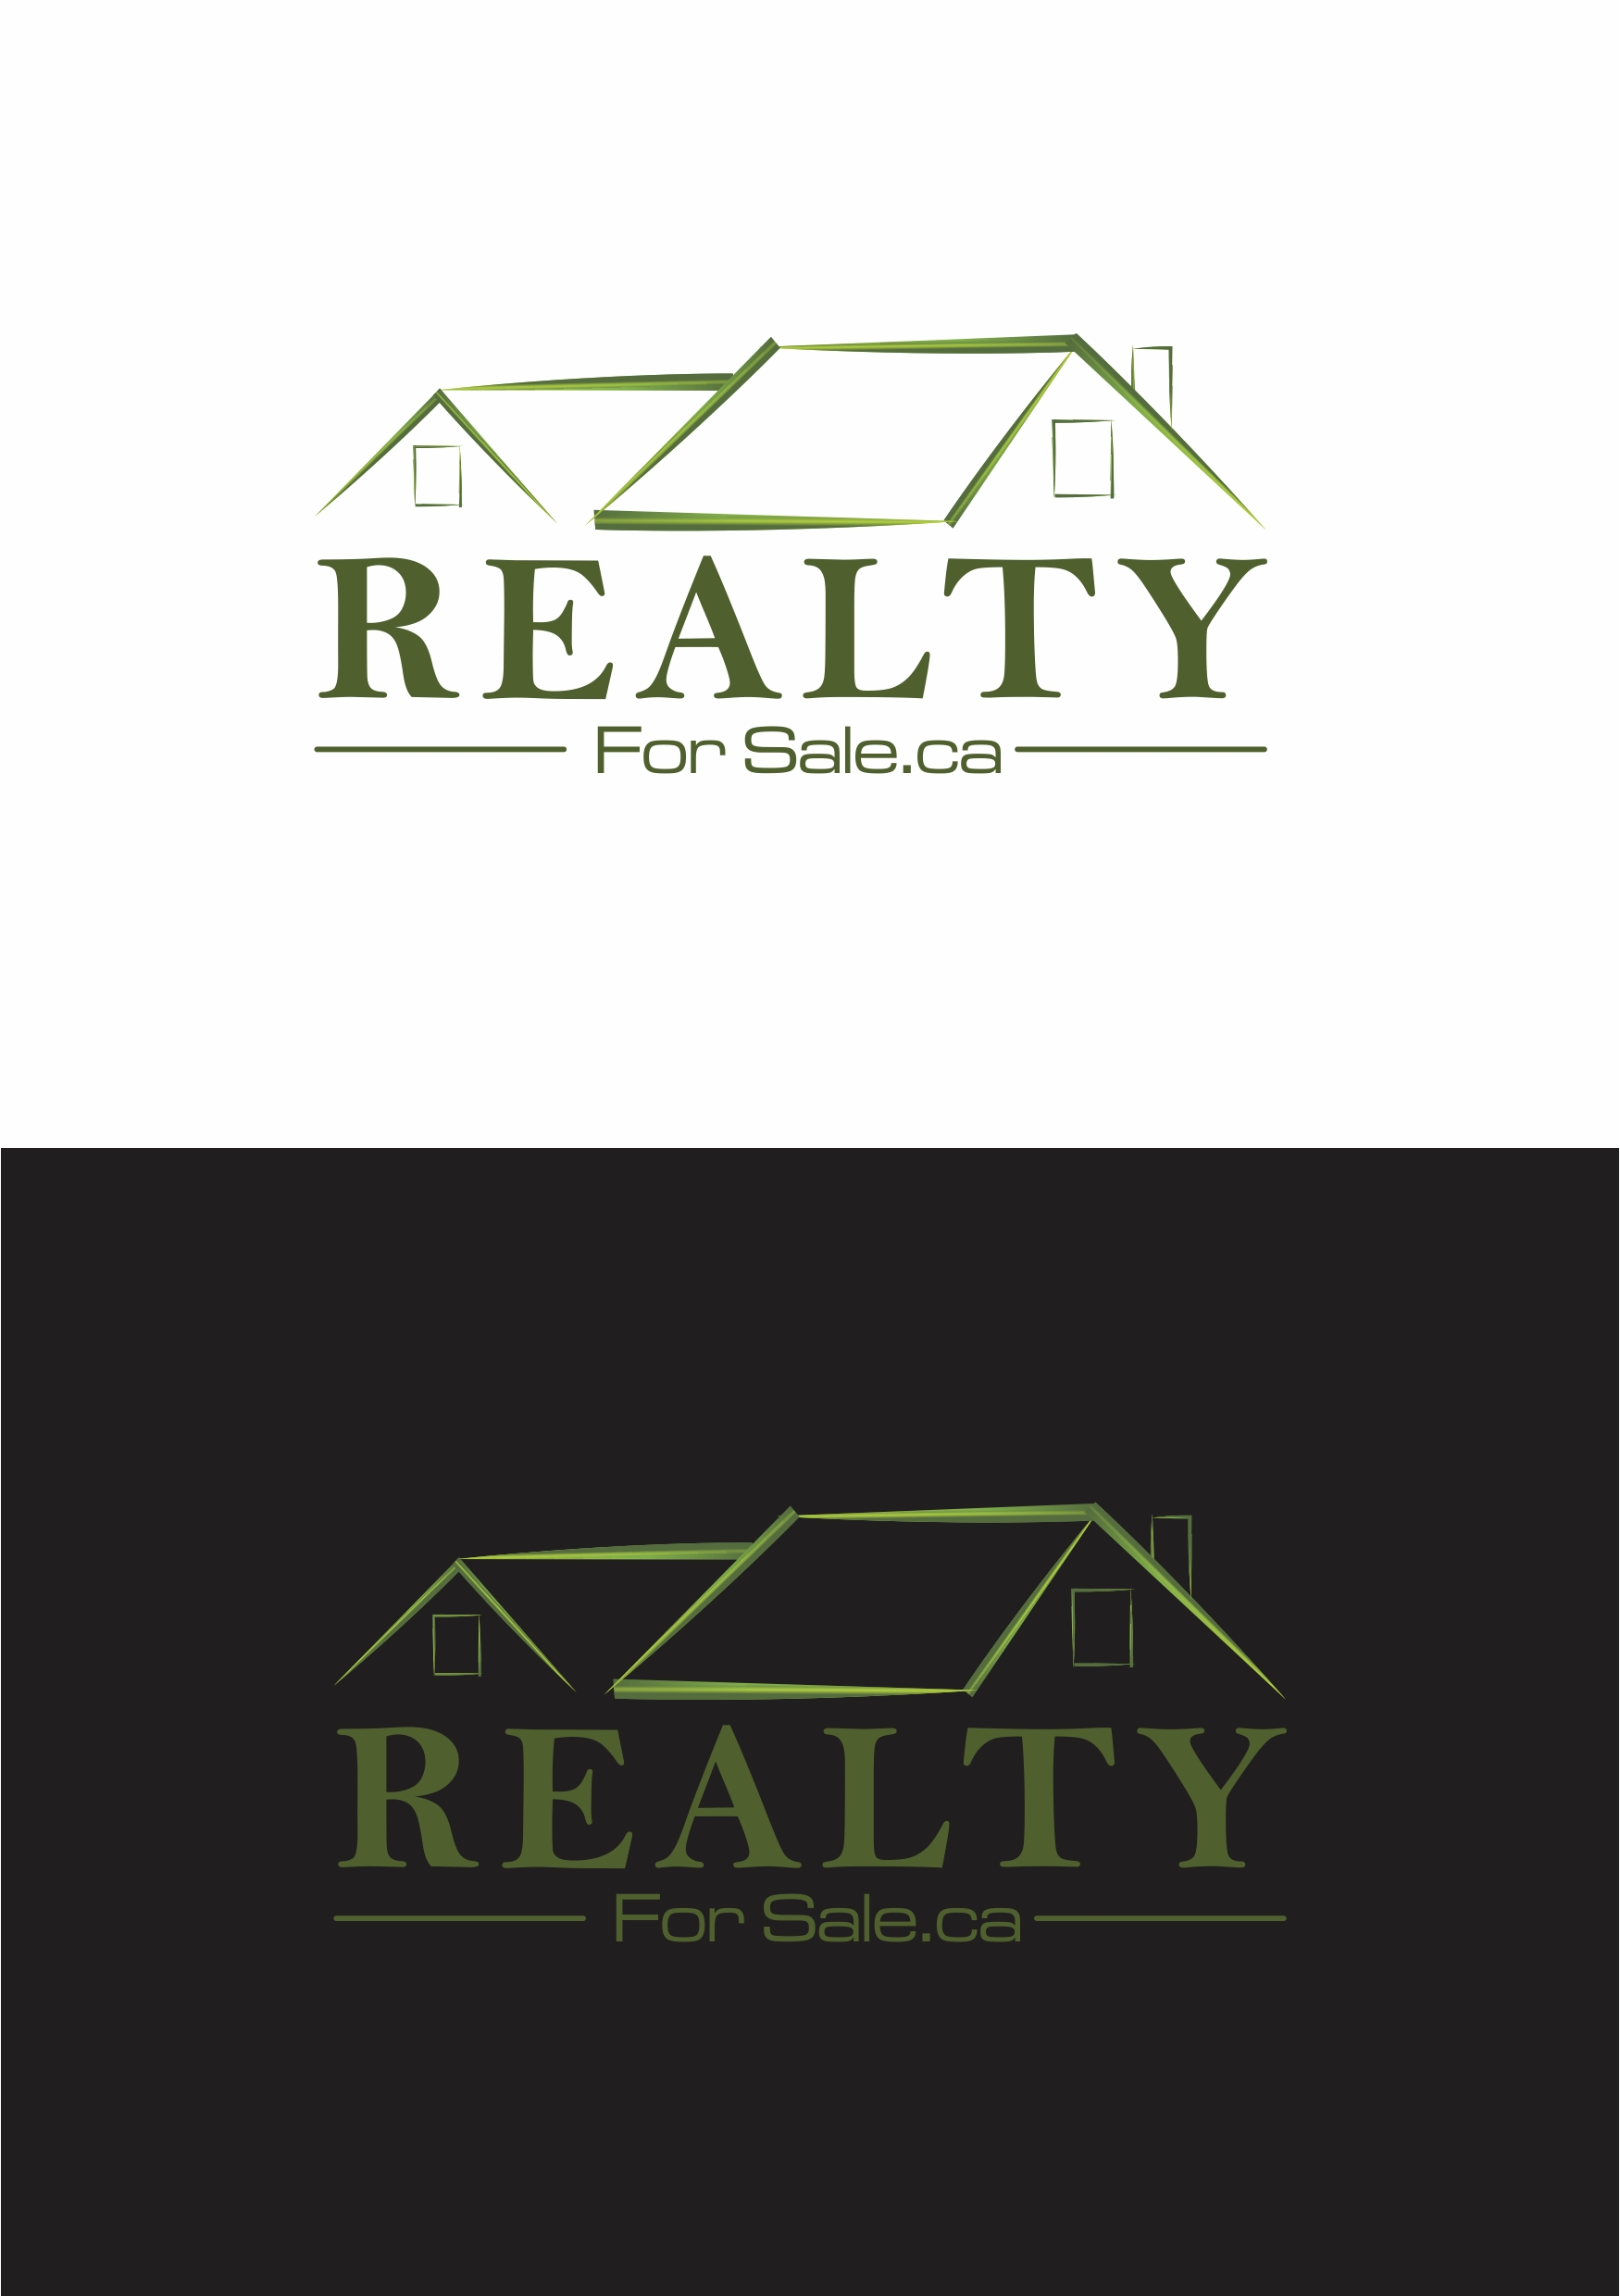 Logo Design by Ramesh Pandey - Entry No. 112 in the Logo Design Contest Inspiring Logo Design for RealtyForSale.ca.